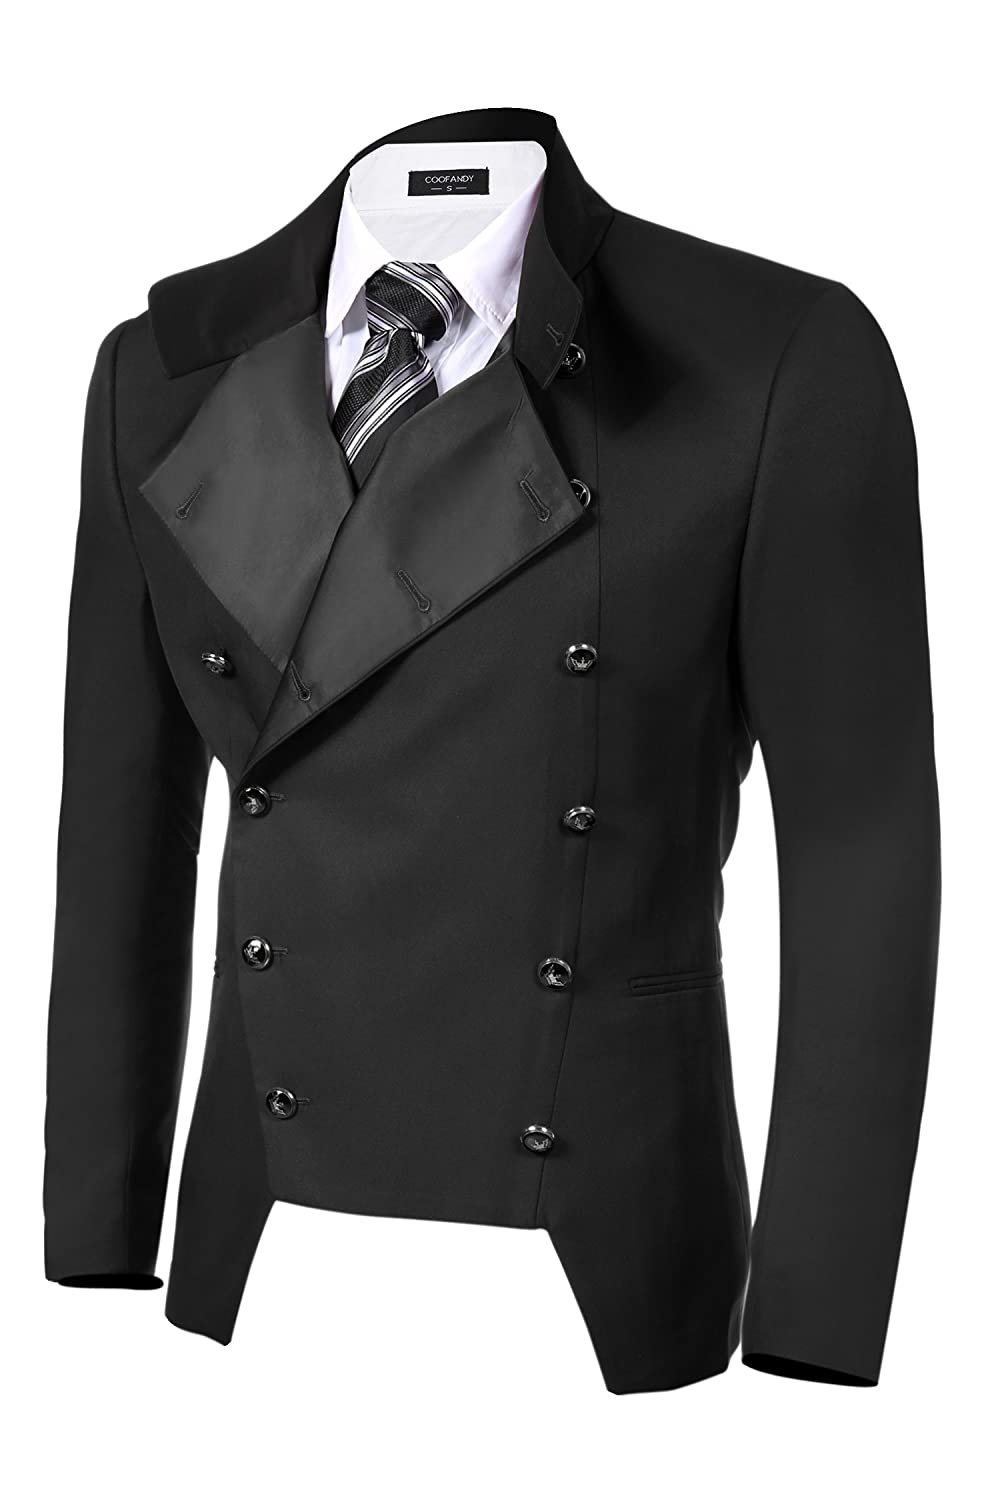 Men's Vintage Style Suits, Classic Suits Double-breasted Jacket Slim Fit Blazer $47.99 AT vintagedancer.com